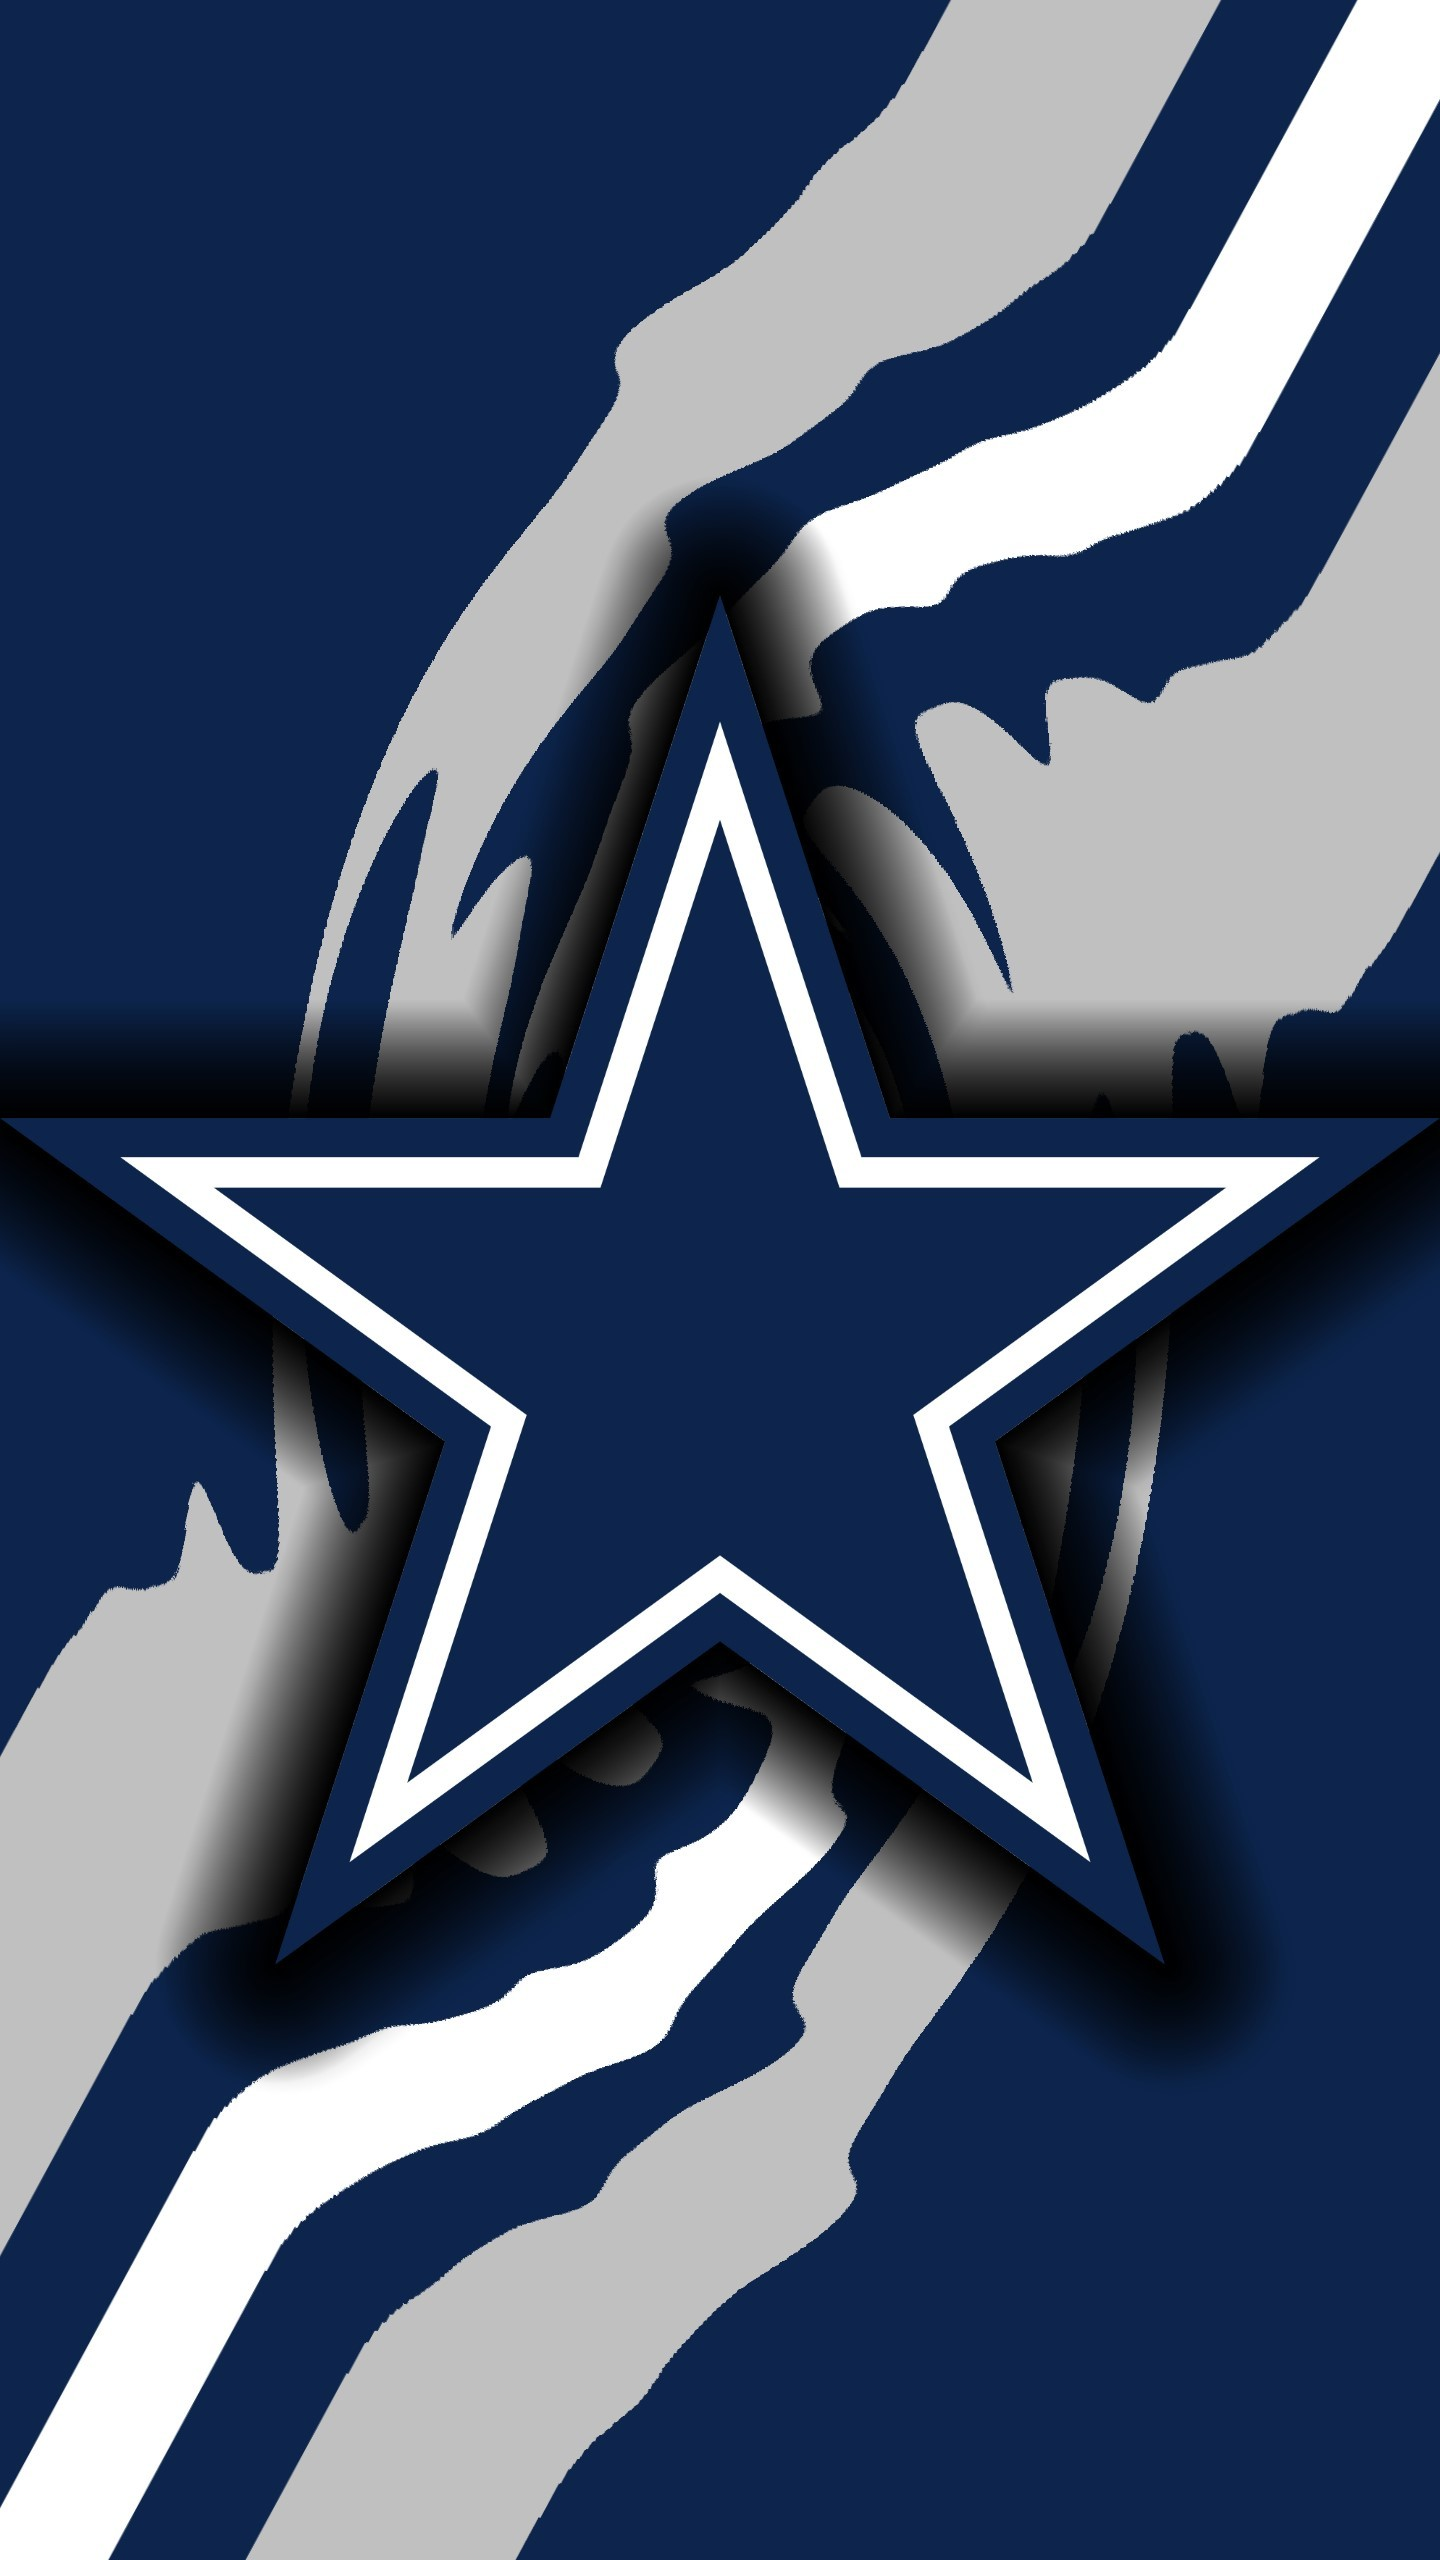 1440x2560 Dallas Cowboys Computer Wallpaper